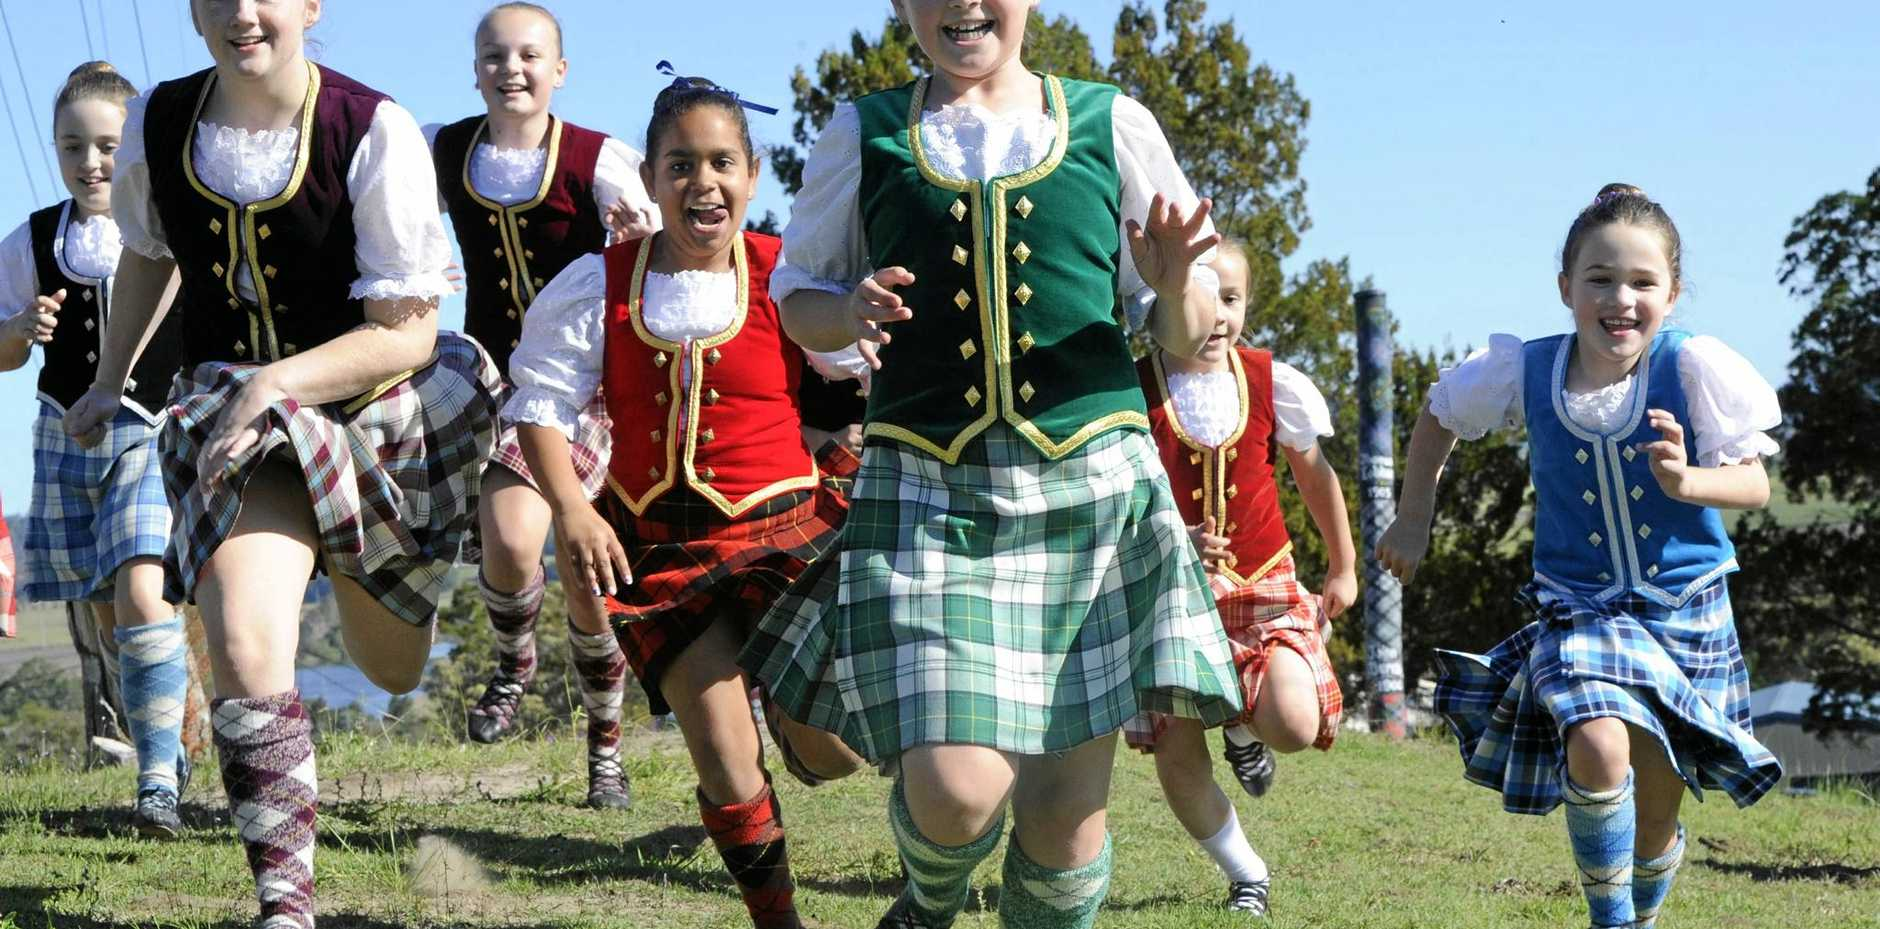 HAPPINESS: Maclean's Scottish heritage will be featured on Sunday at the Harmony Day event.